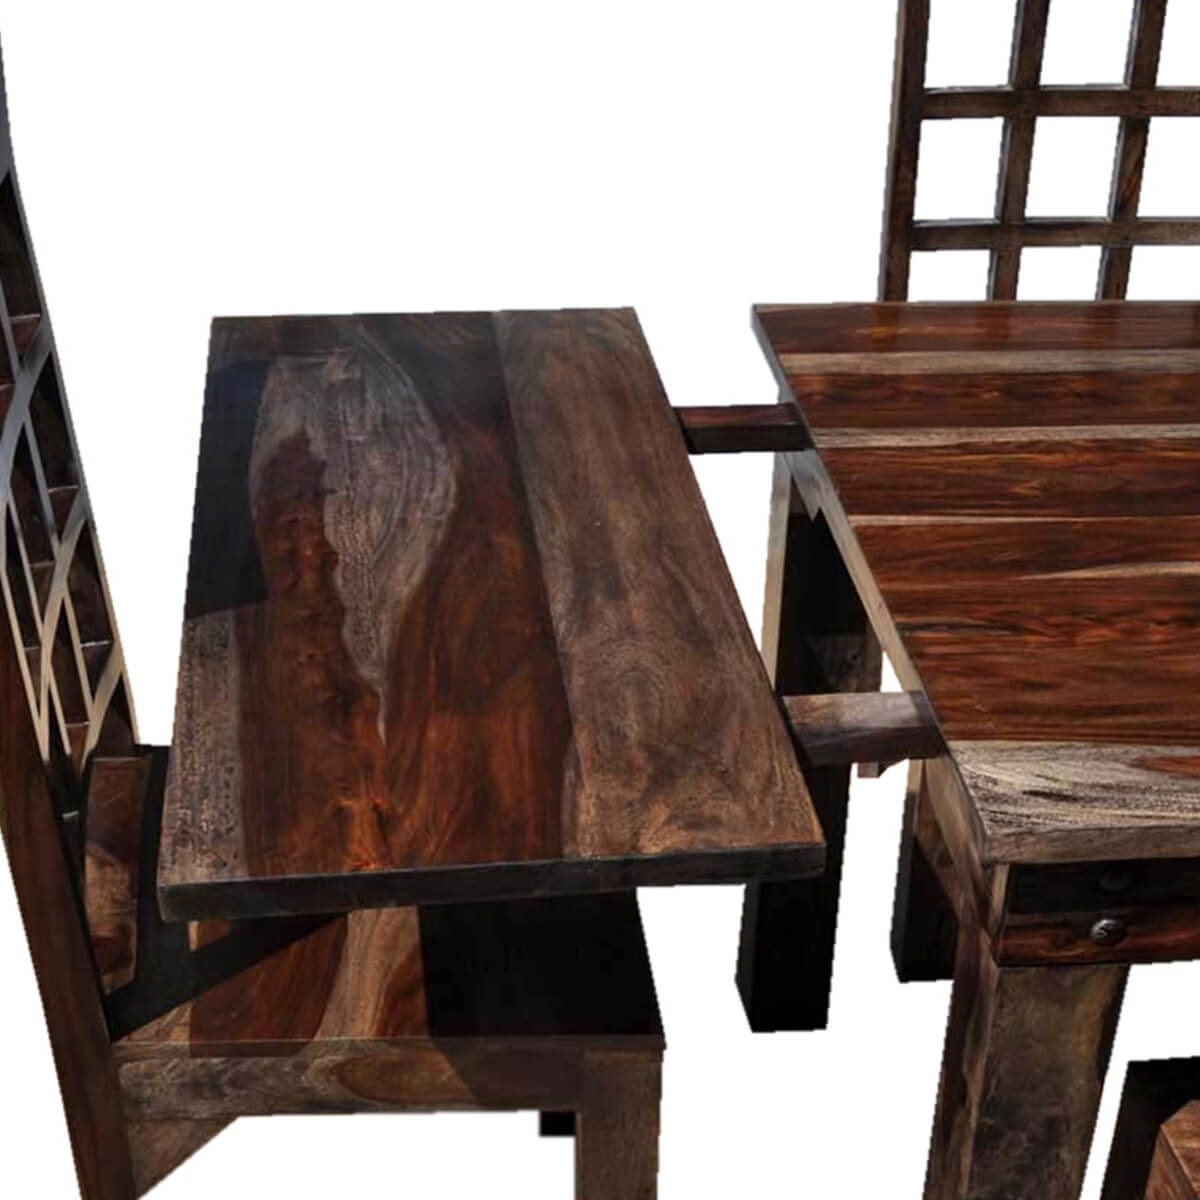 portland rustic furniture extendable dining room table chair set. Black Bedroom Furniture Sets. Home Design Ideas